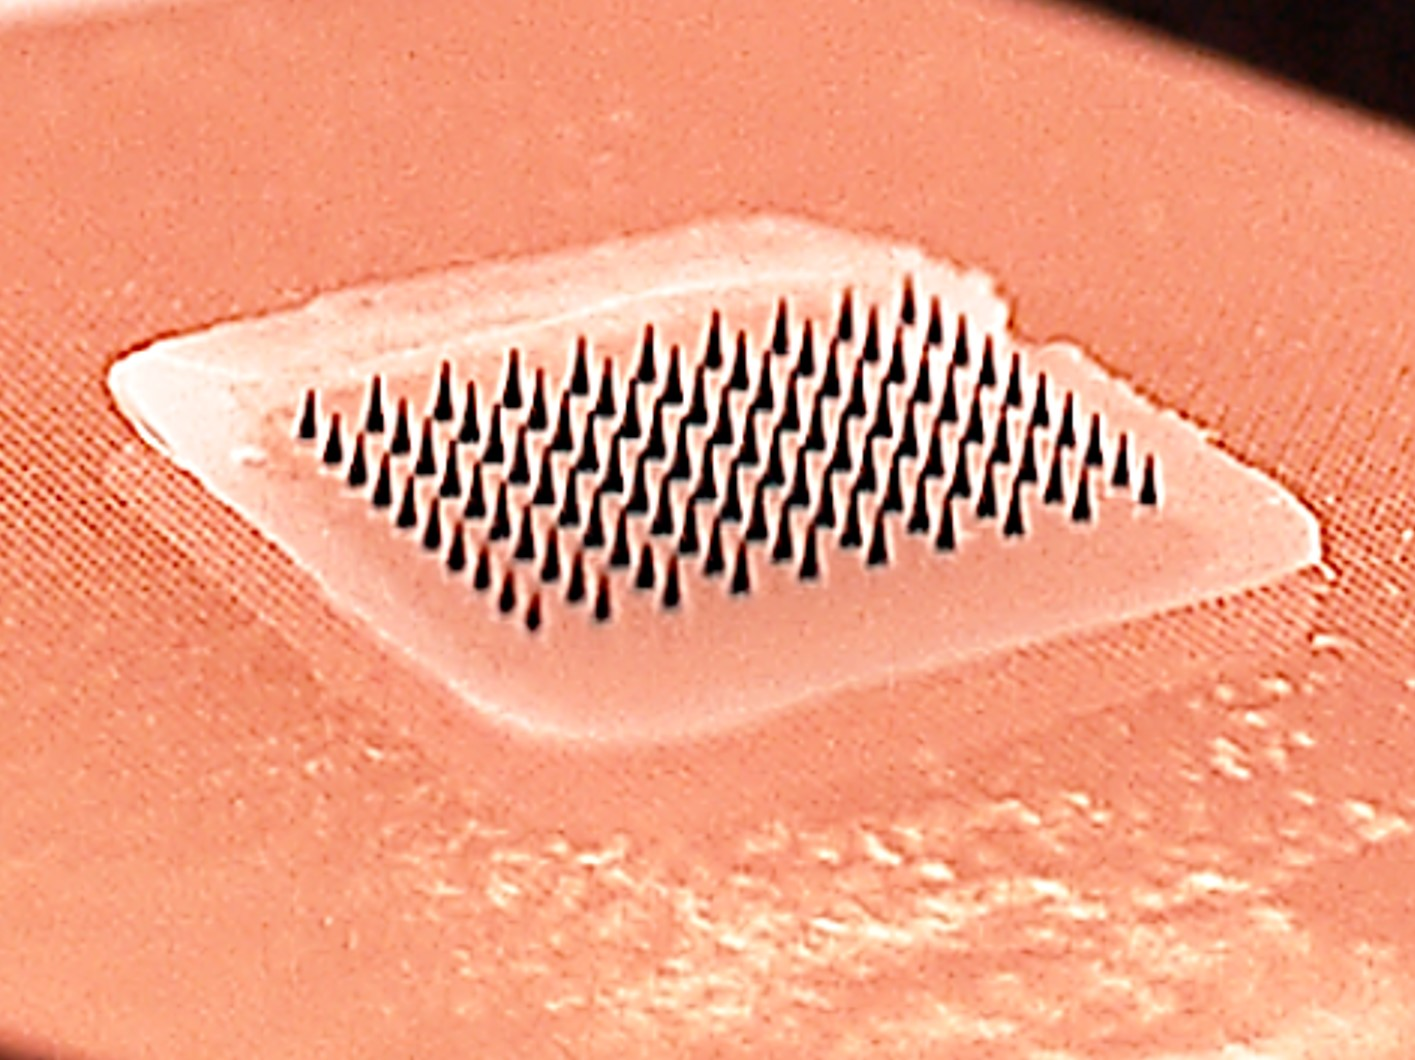 Microneedle Patches For Flu Vaccination Prove Successful